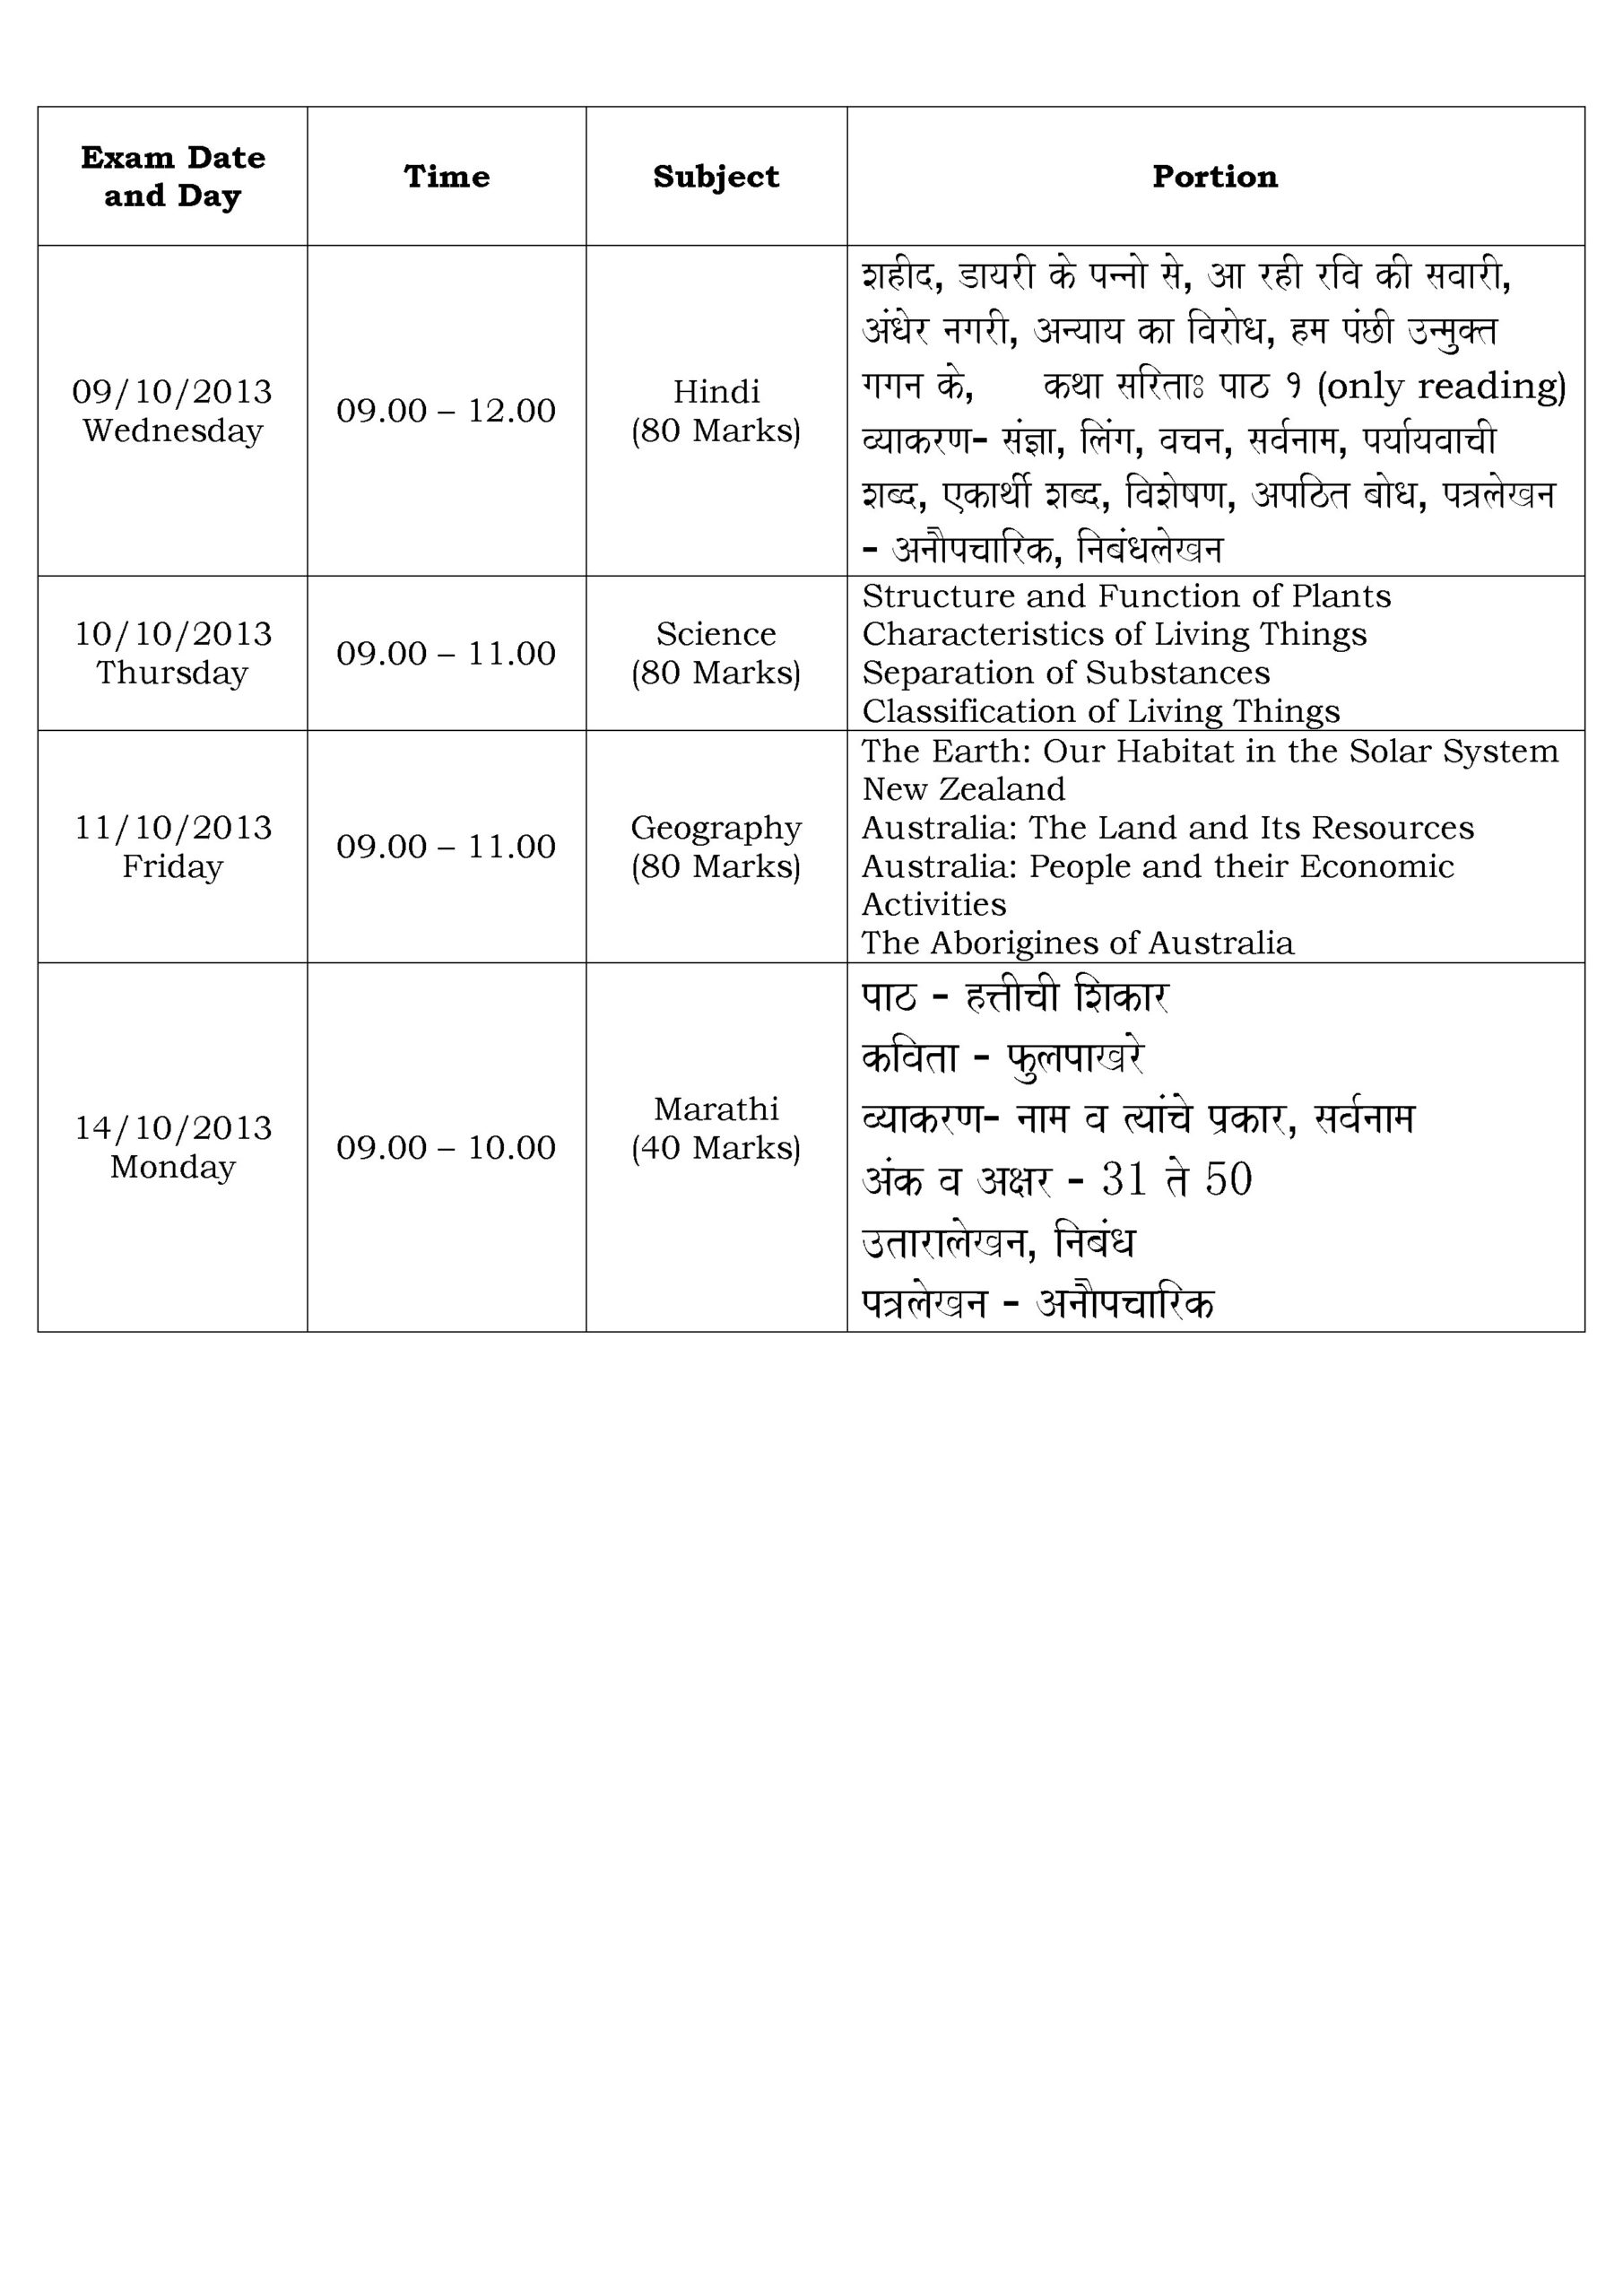 . VI - First Semester Examination Time Table and Portion 2013- 2014 1